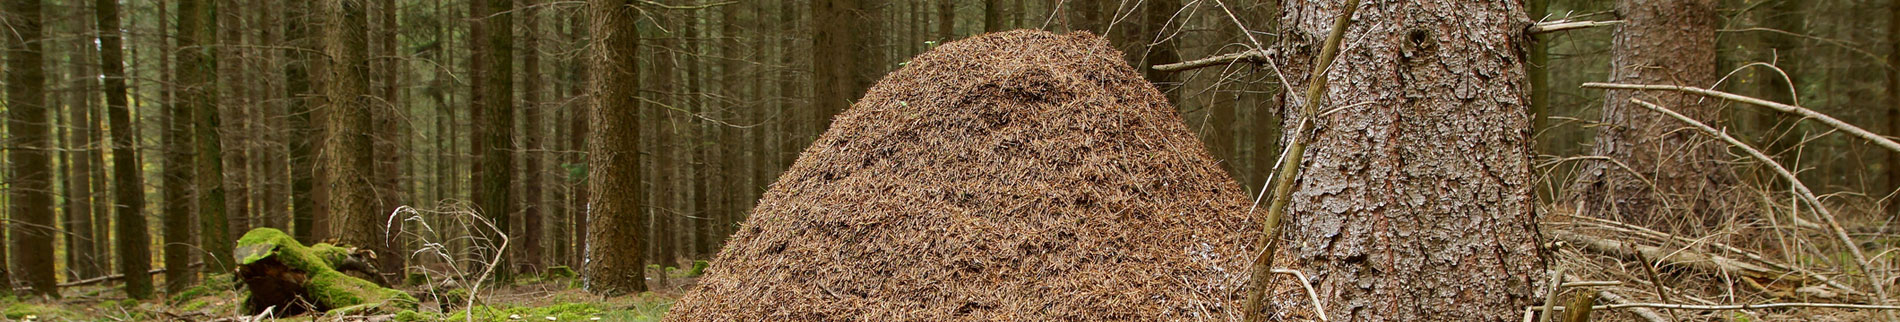 Allegheny Mound Ants